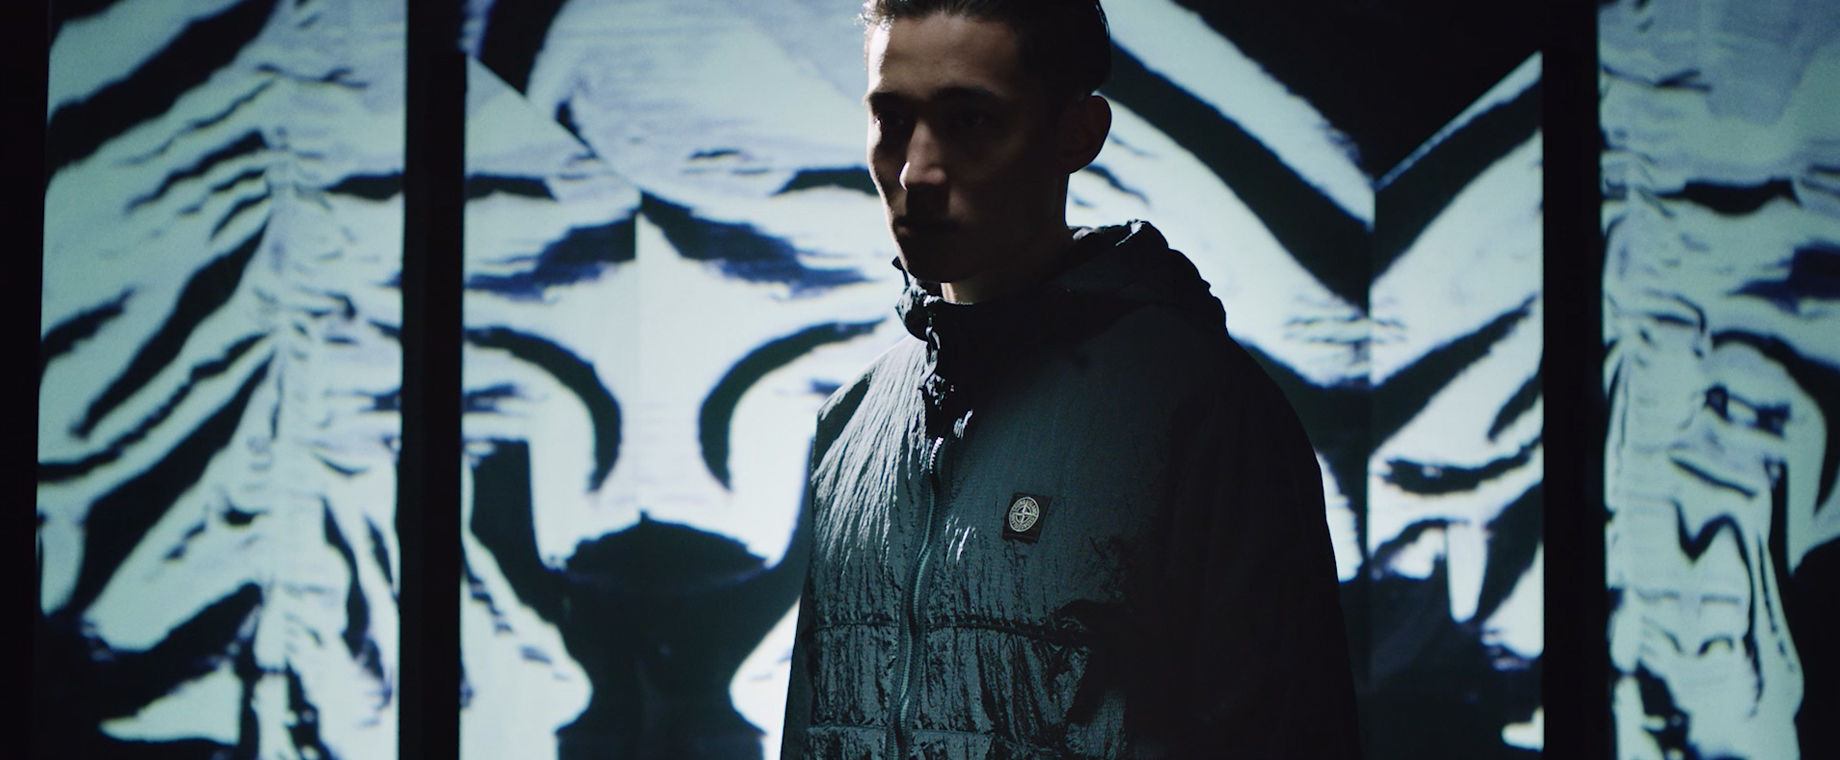 Model with face obscured by shadows wearing a dark toned technical jacket with Stone Island patch on the left side of the chest.